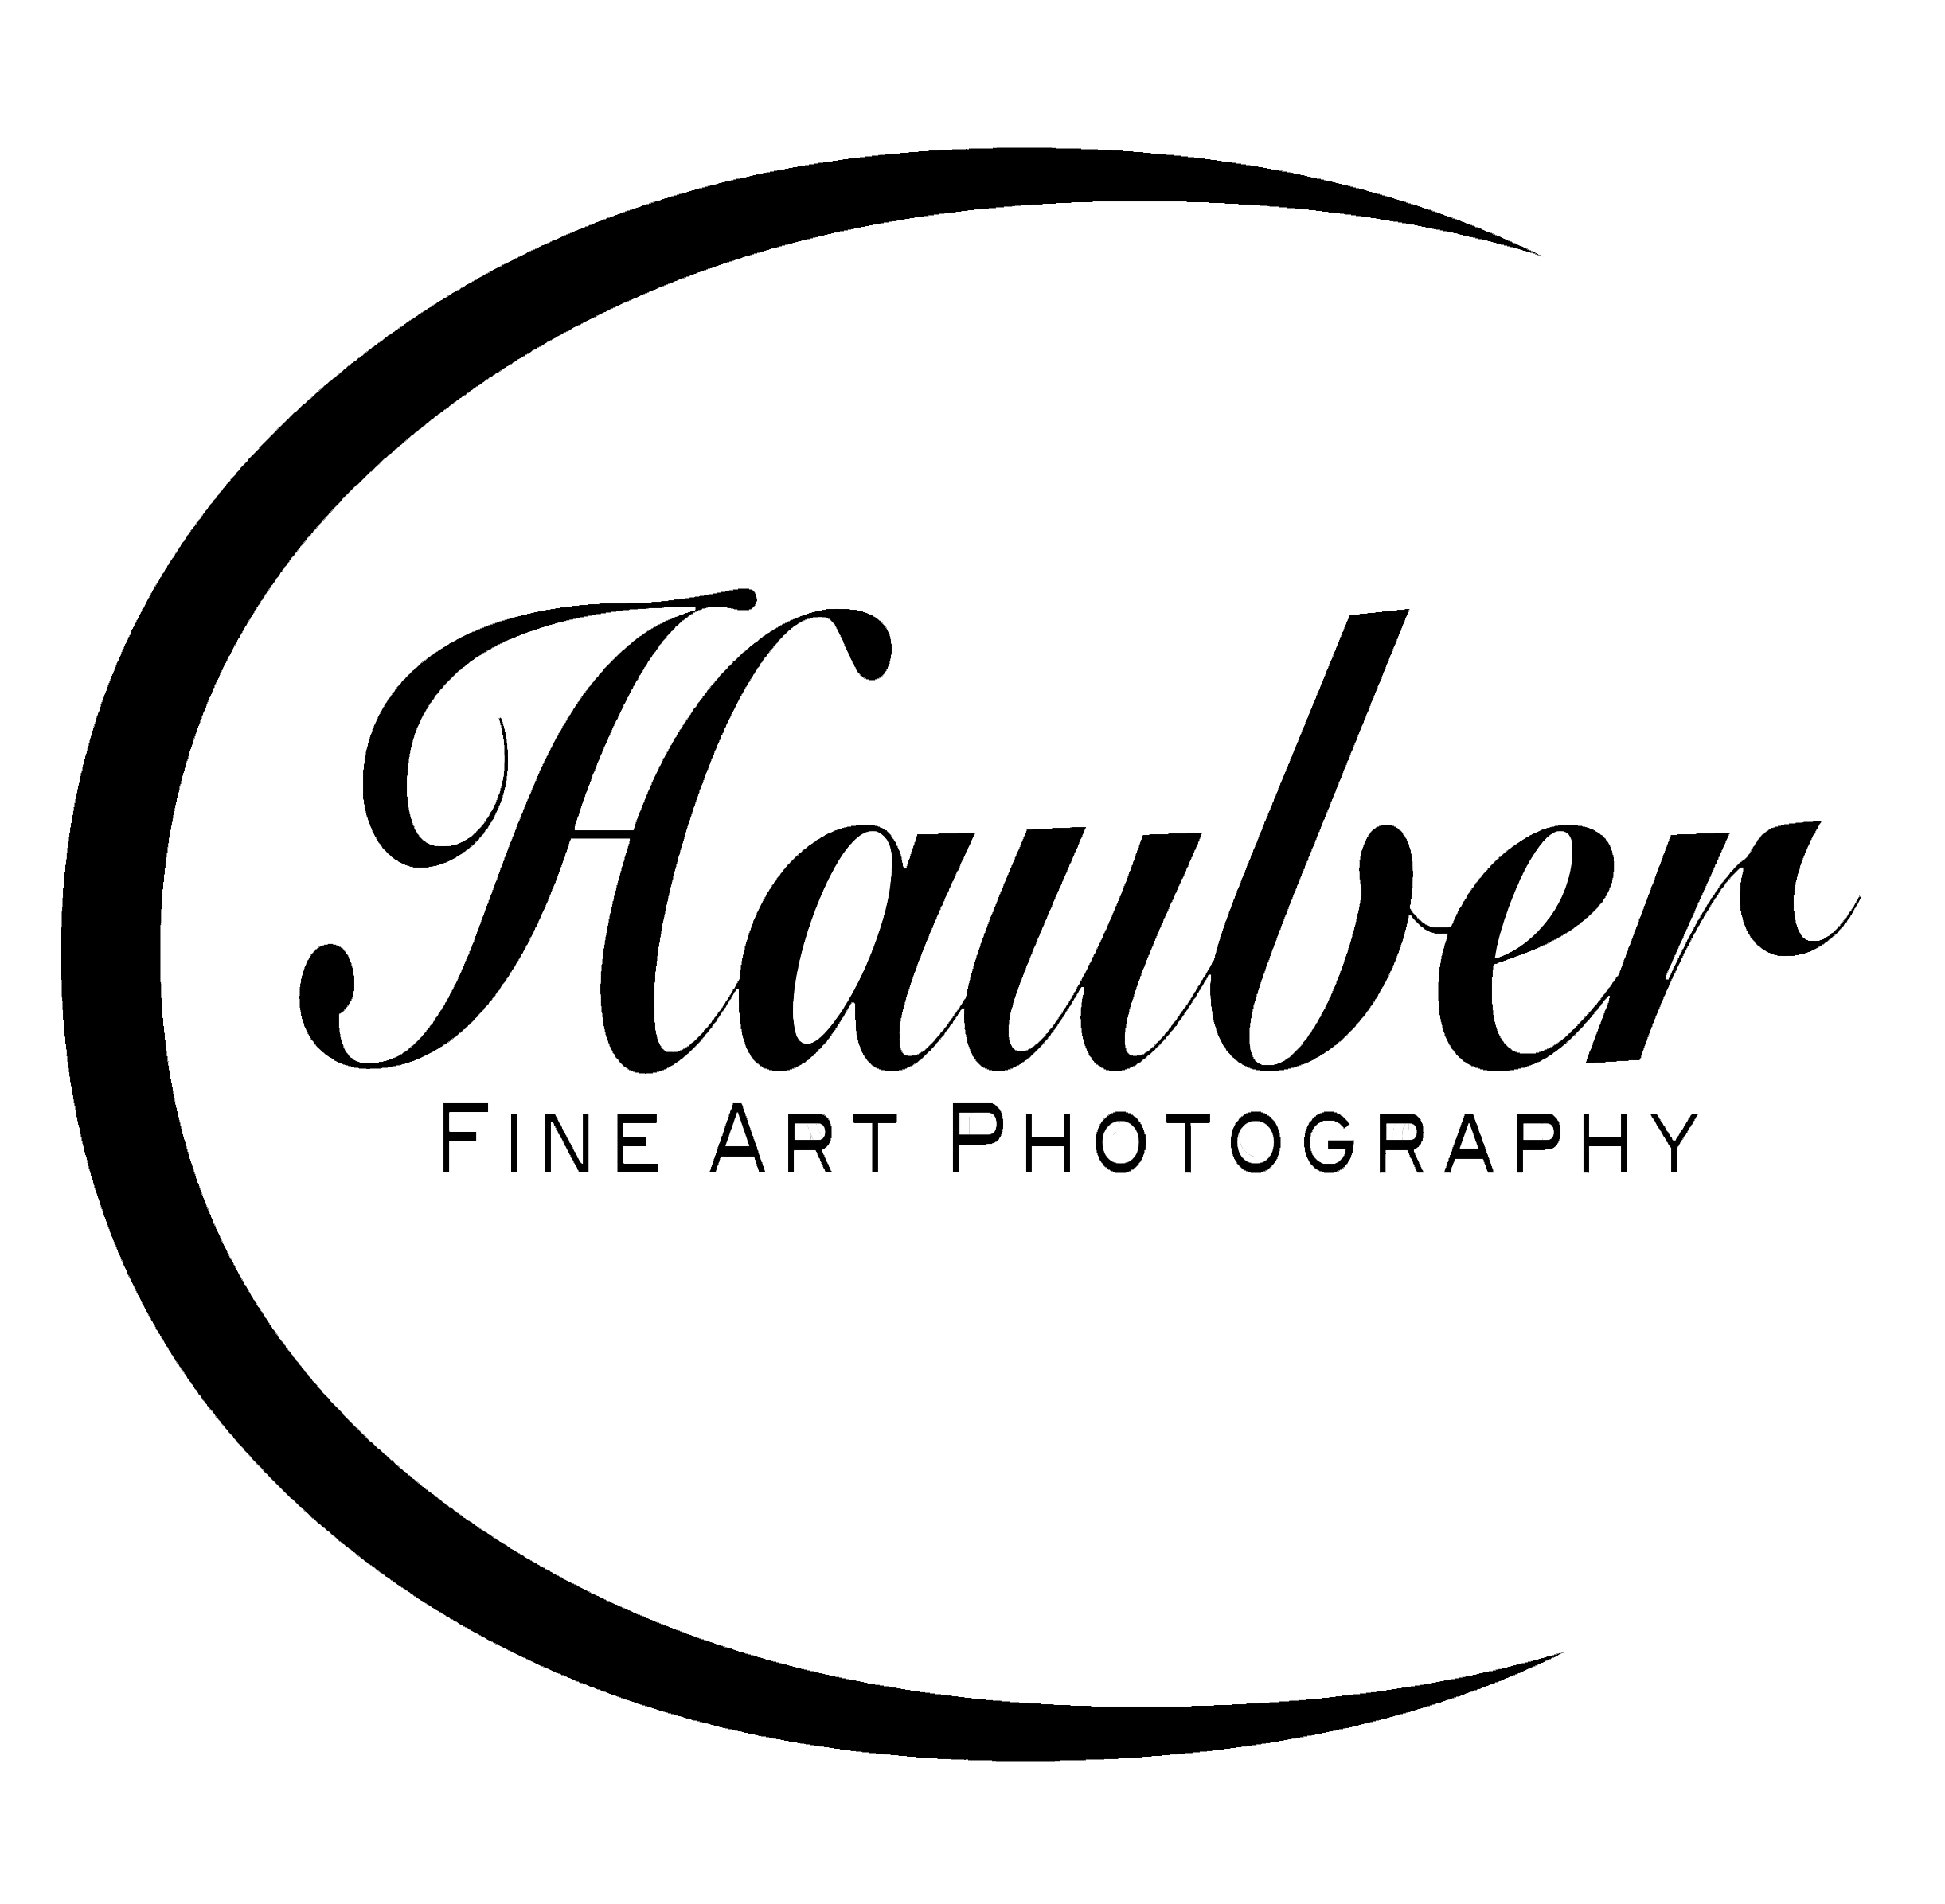 Christine Hauber Photography